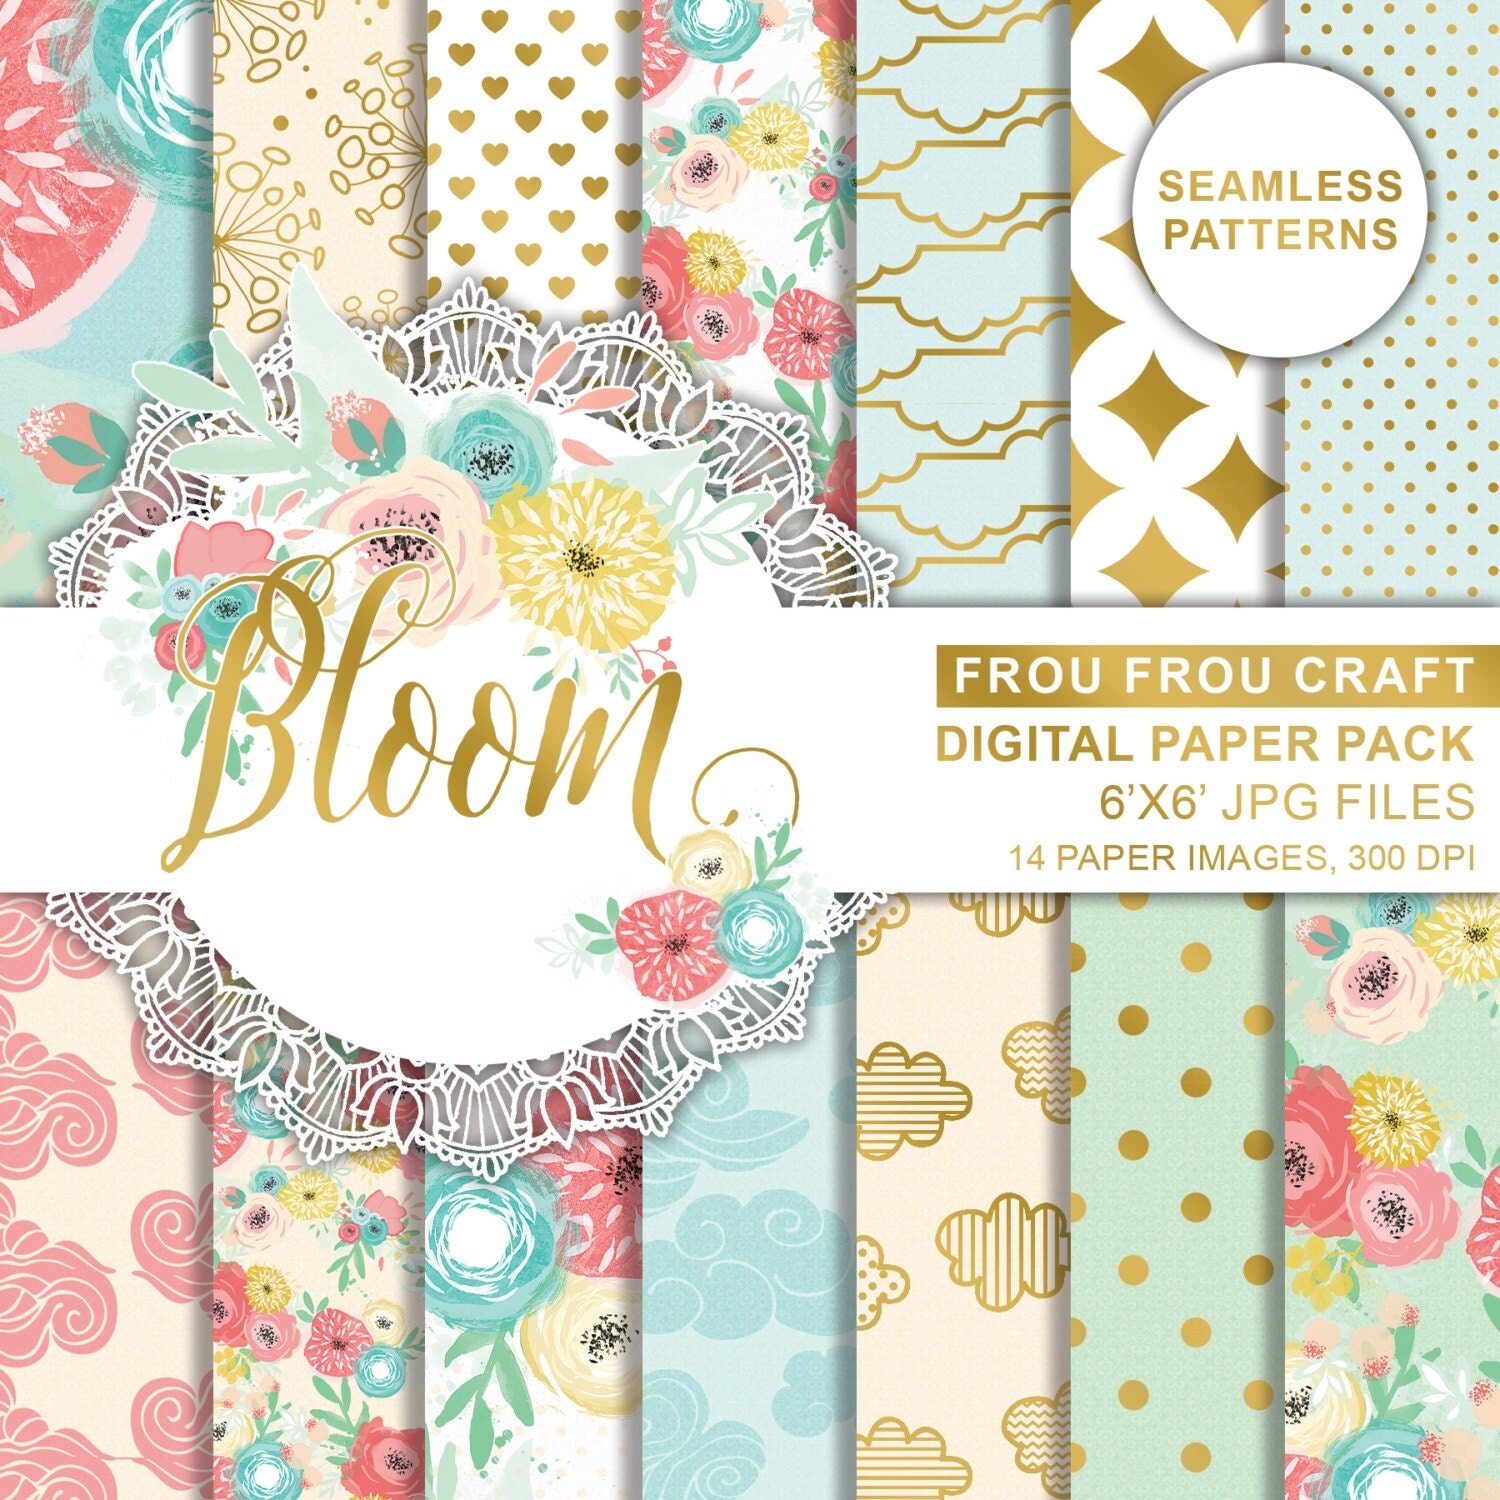 Scrapbook paper clouds - Spring Flowers Digital Printable Paper Colorful Flowers Paper Green Yellow Scrapbook Paper Pack Floral Pink Roses Paper Polka Dots Paper